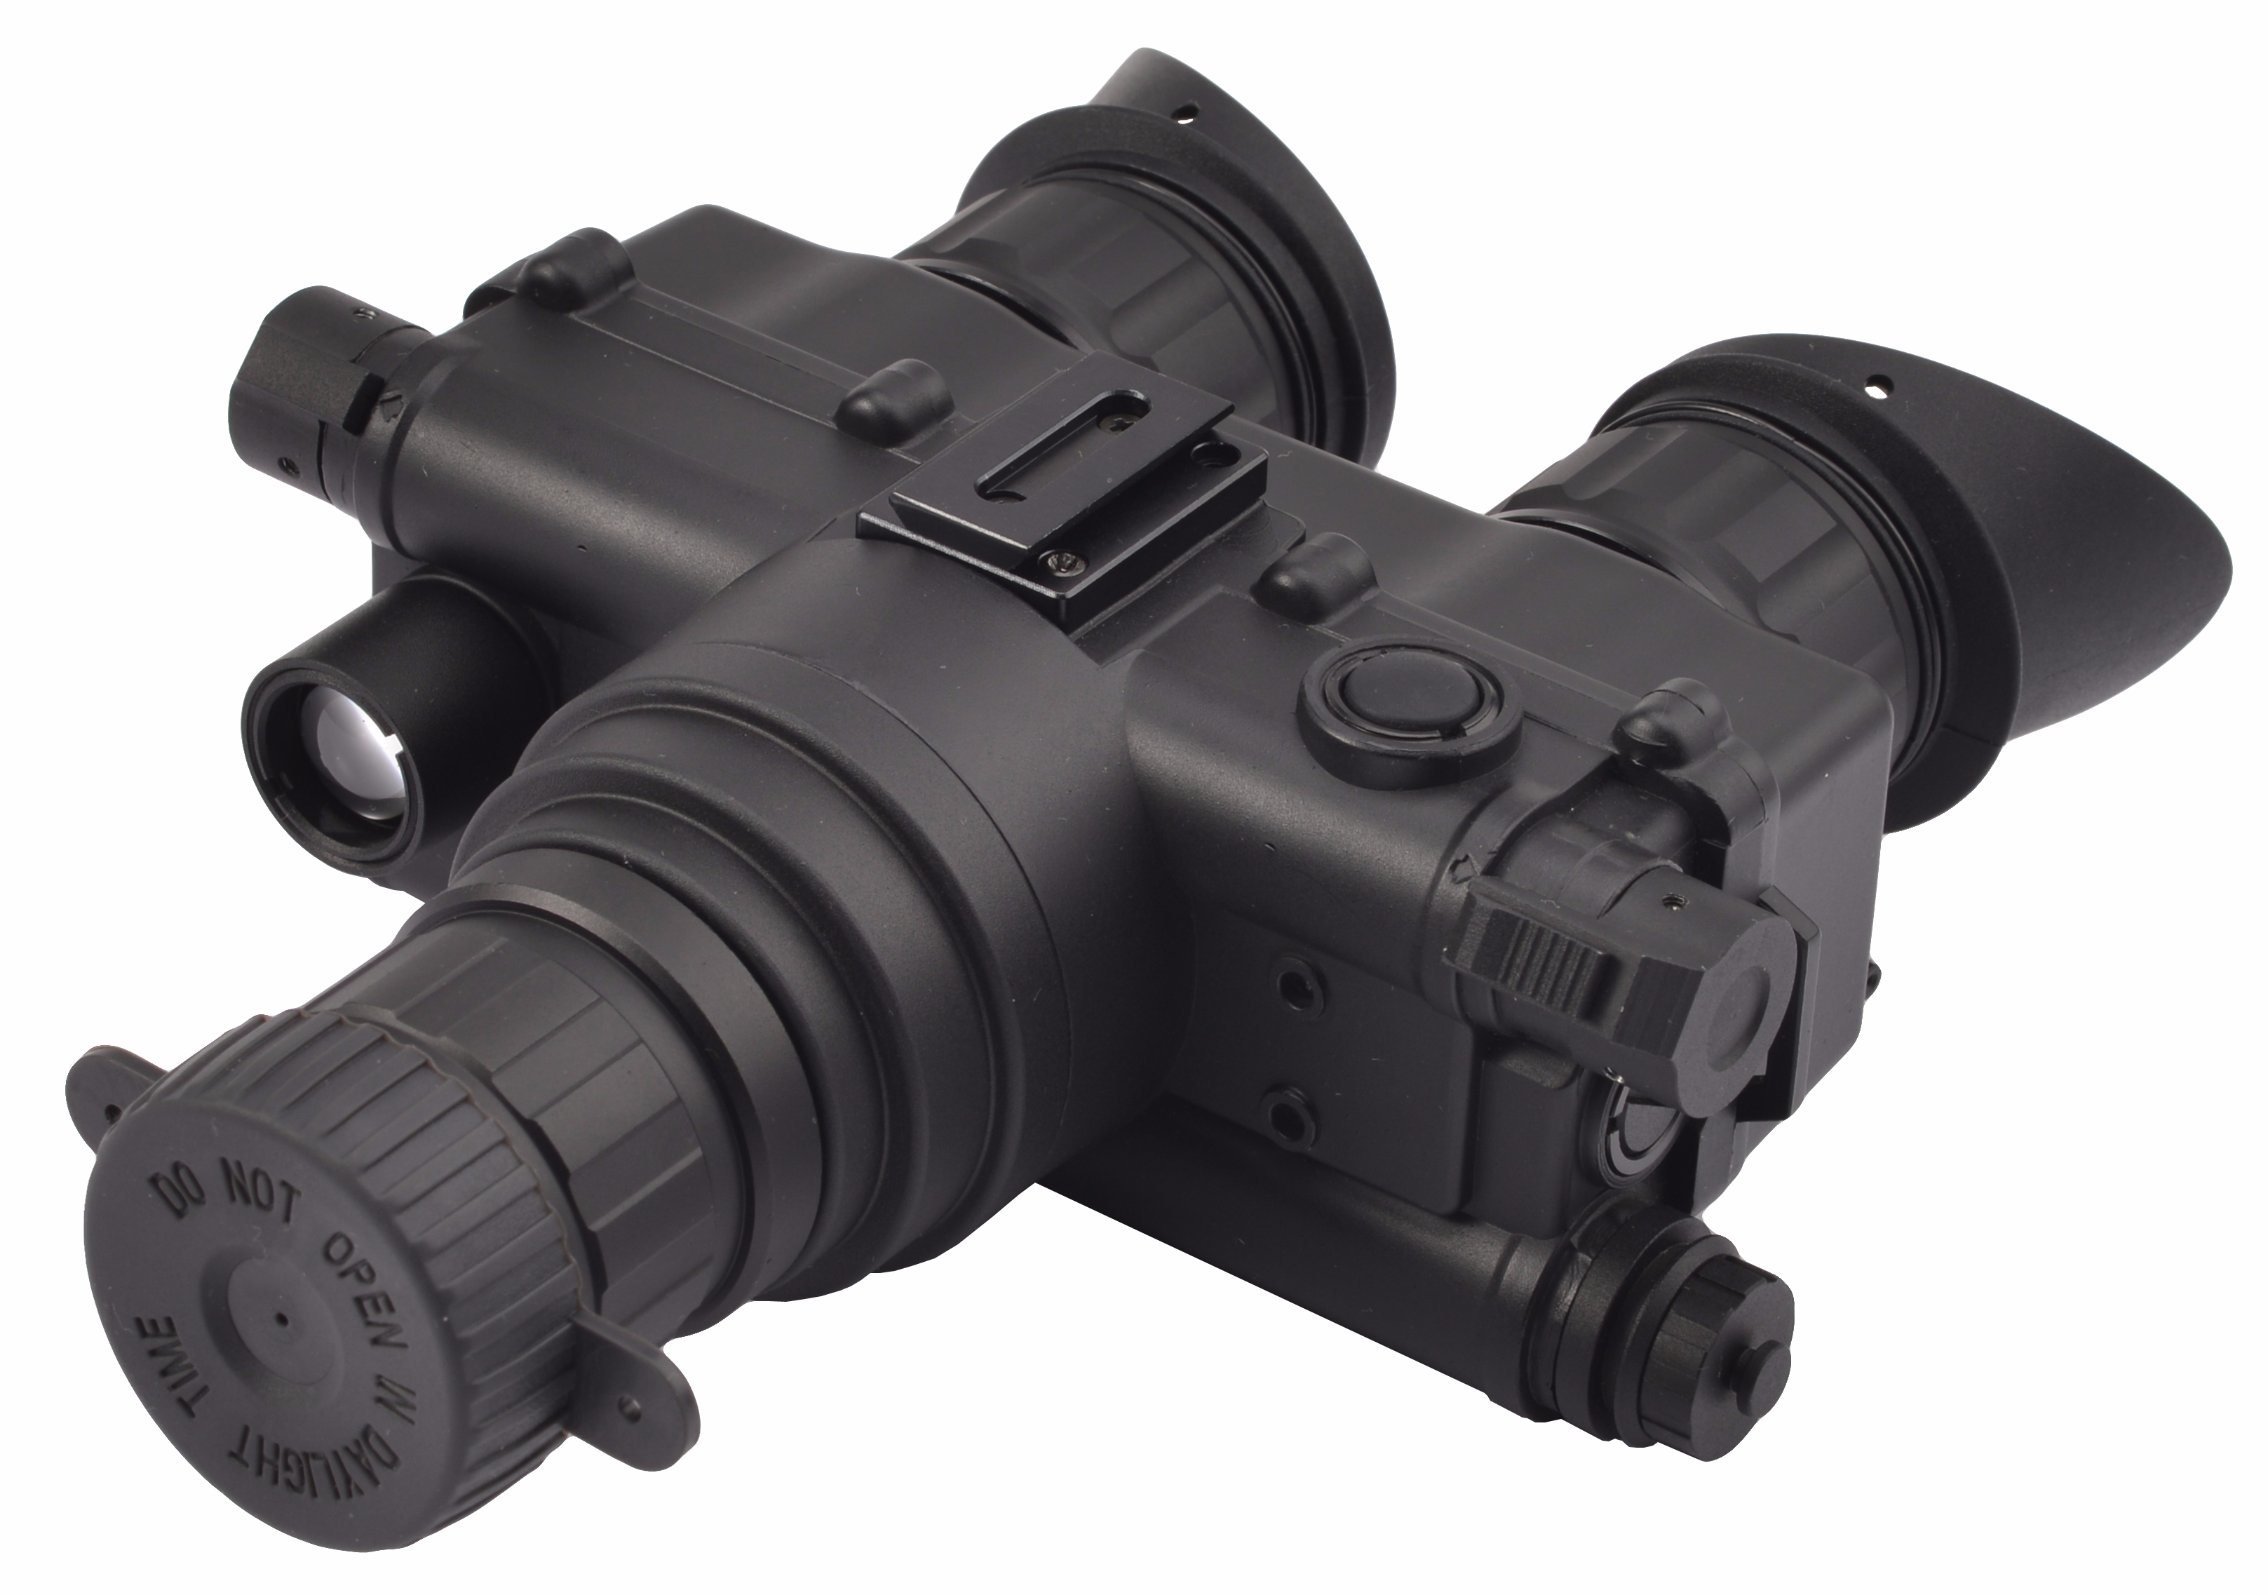 Quasi Gen3 Night Vision Goggles with Adjustable Eyepiece and Video Output D-G3071 (with 1X Lens) pictures & photos